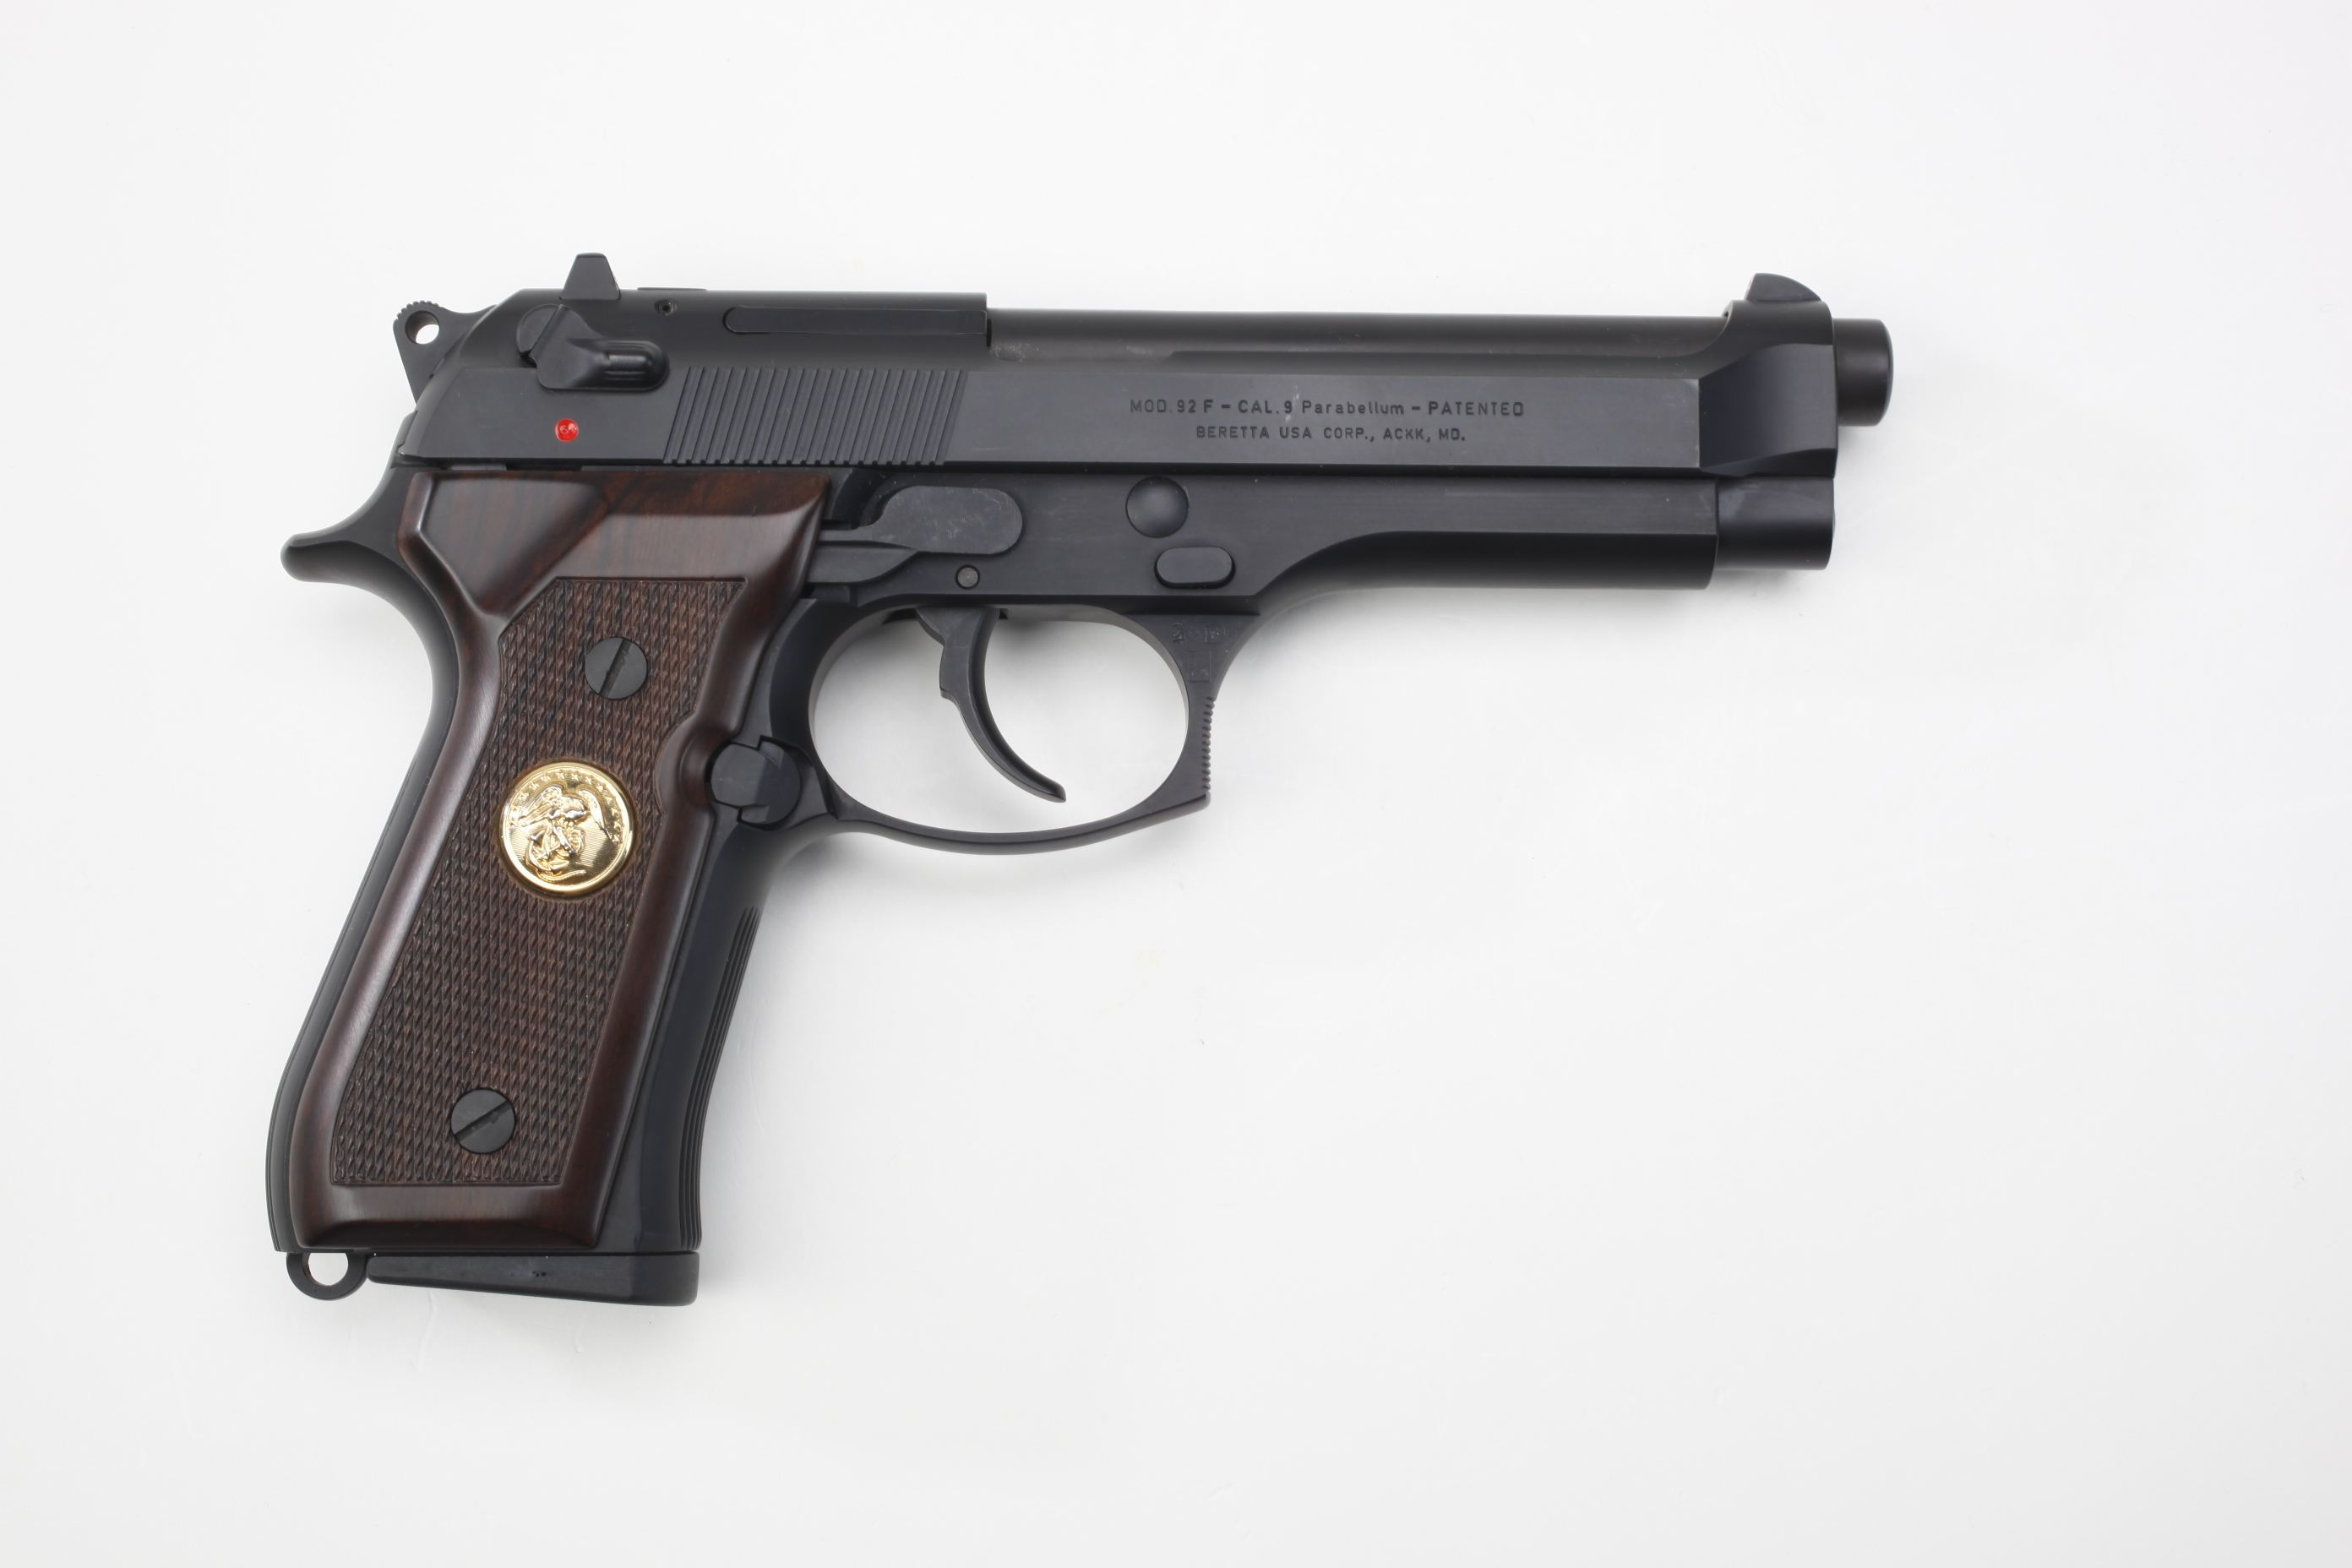 USMC Commandant PX Kelley's Beretta (Accokeek, MD) M9 General Officer's Pistol